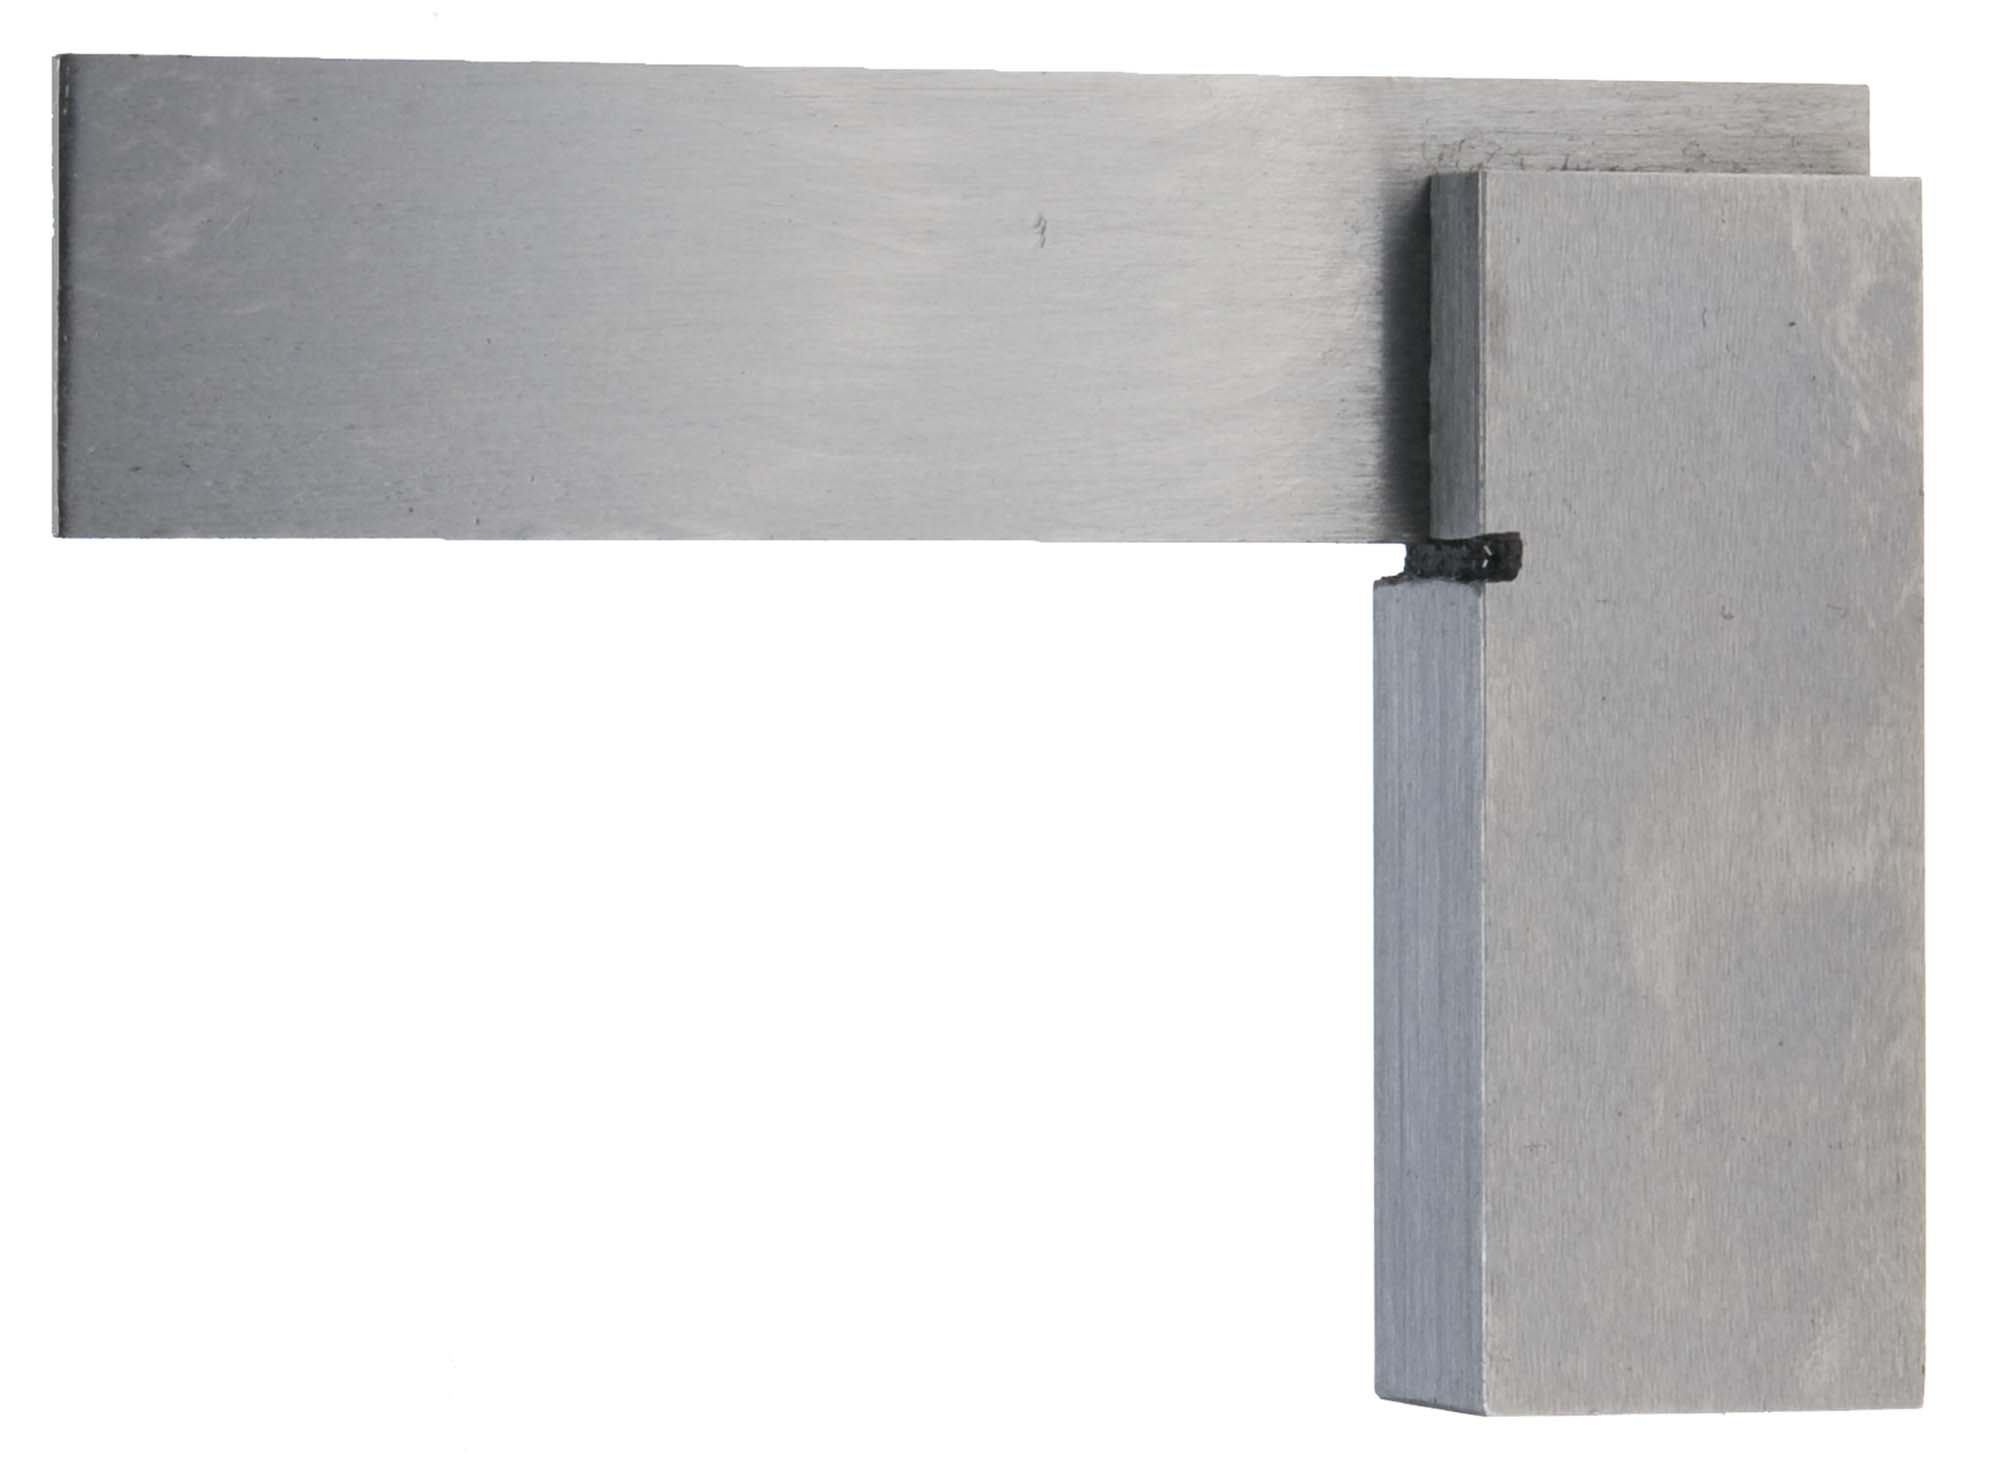 "SQ-4  4"" Hardened Steel Square"